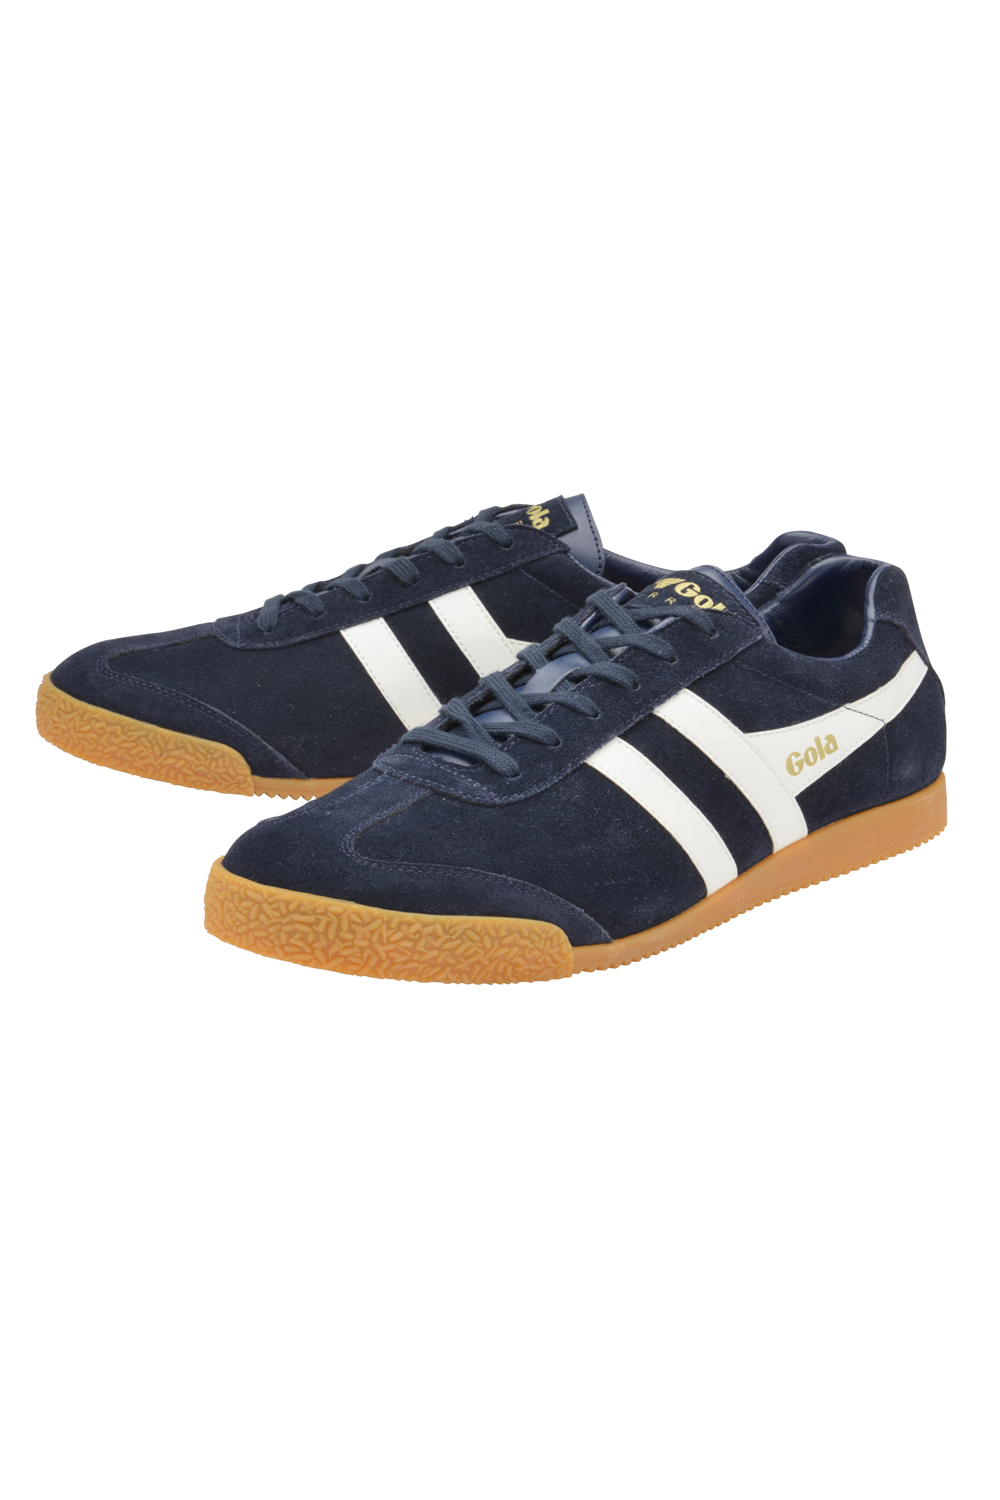 thumbnail 4 - Gola Harrier Suede Classic Vintage Lace-Up Sneakers Mens Trainers Low Top Shoes